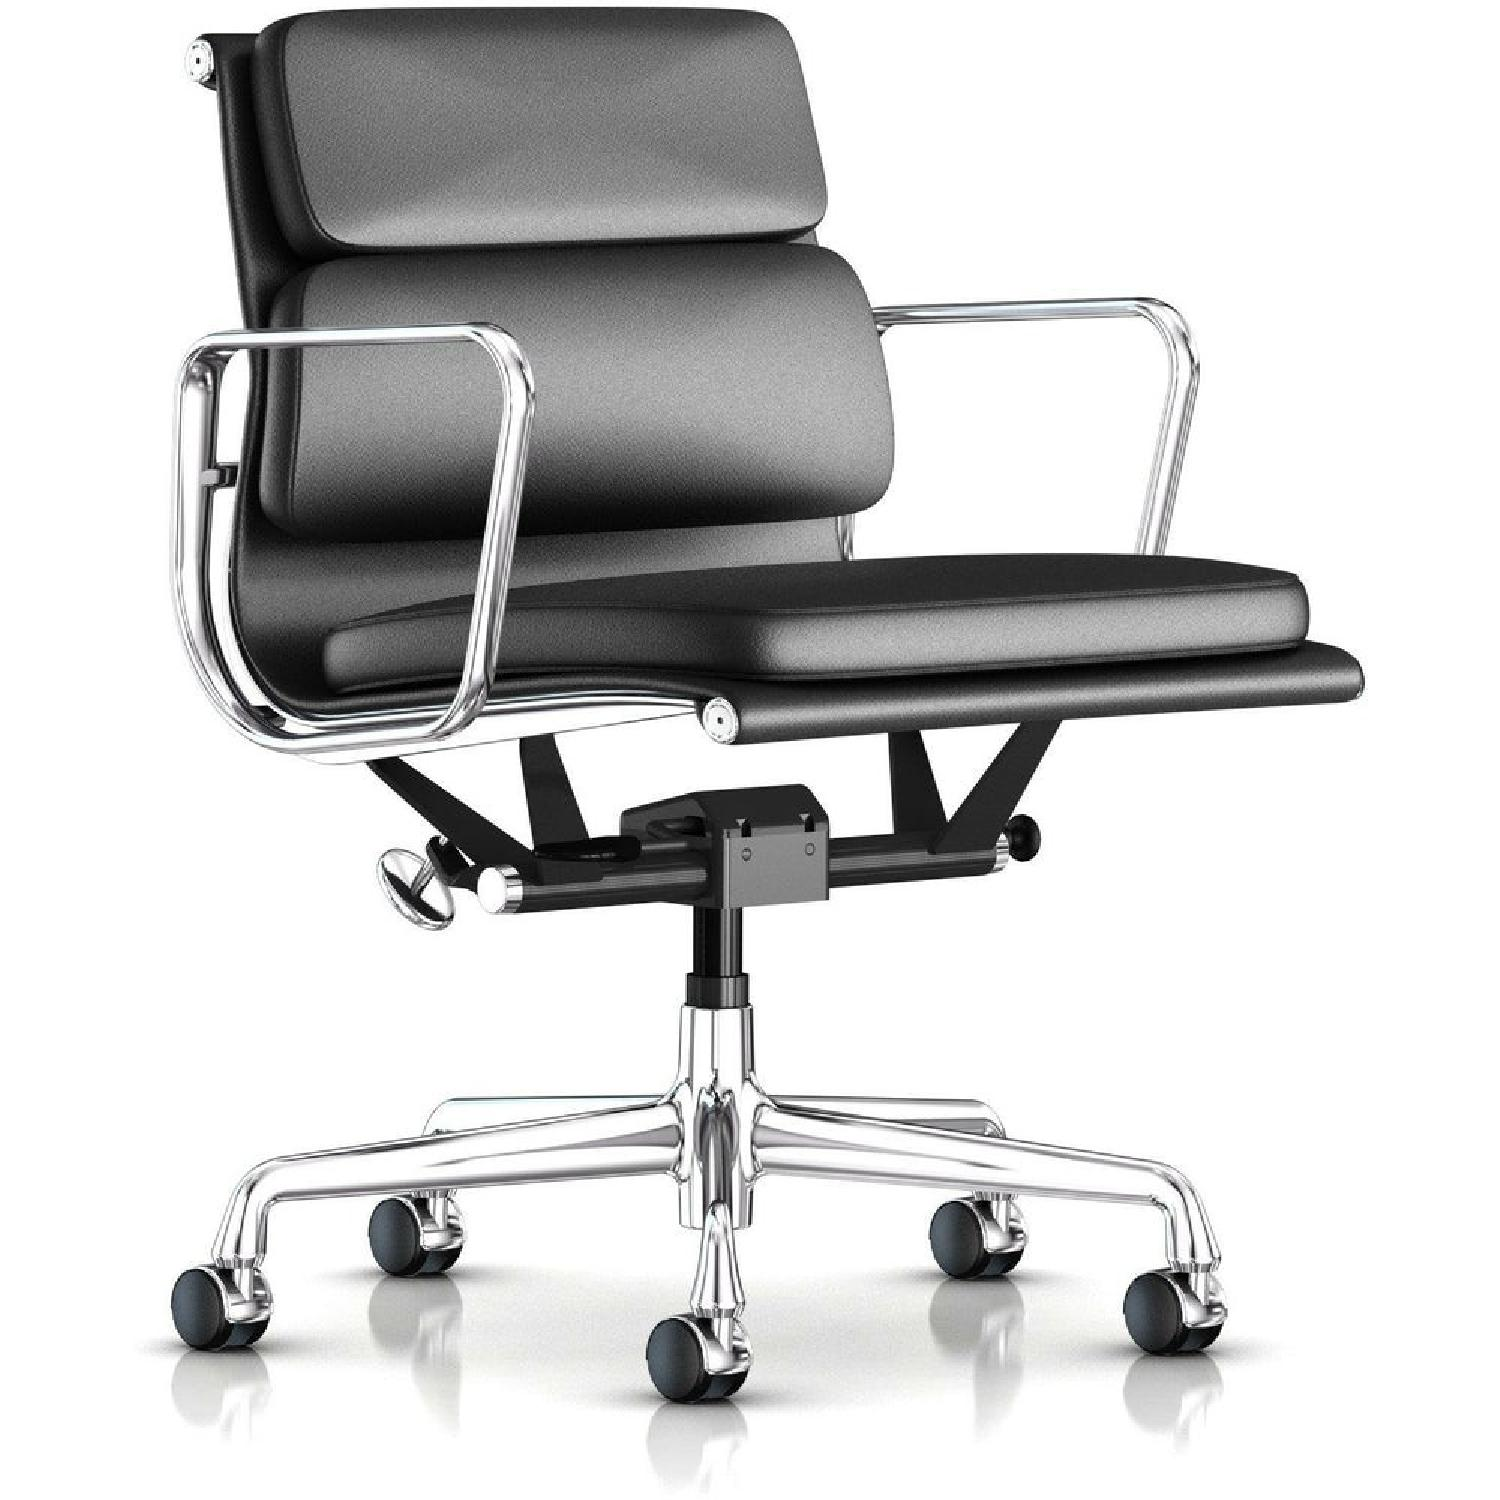 Herman Miller Eames Soft Pad Executive Chair - image-12